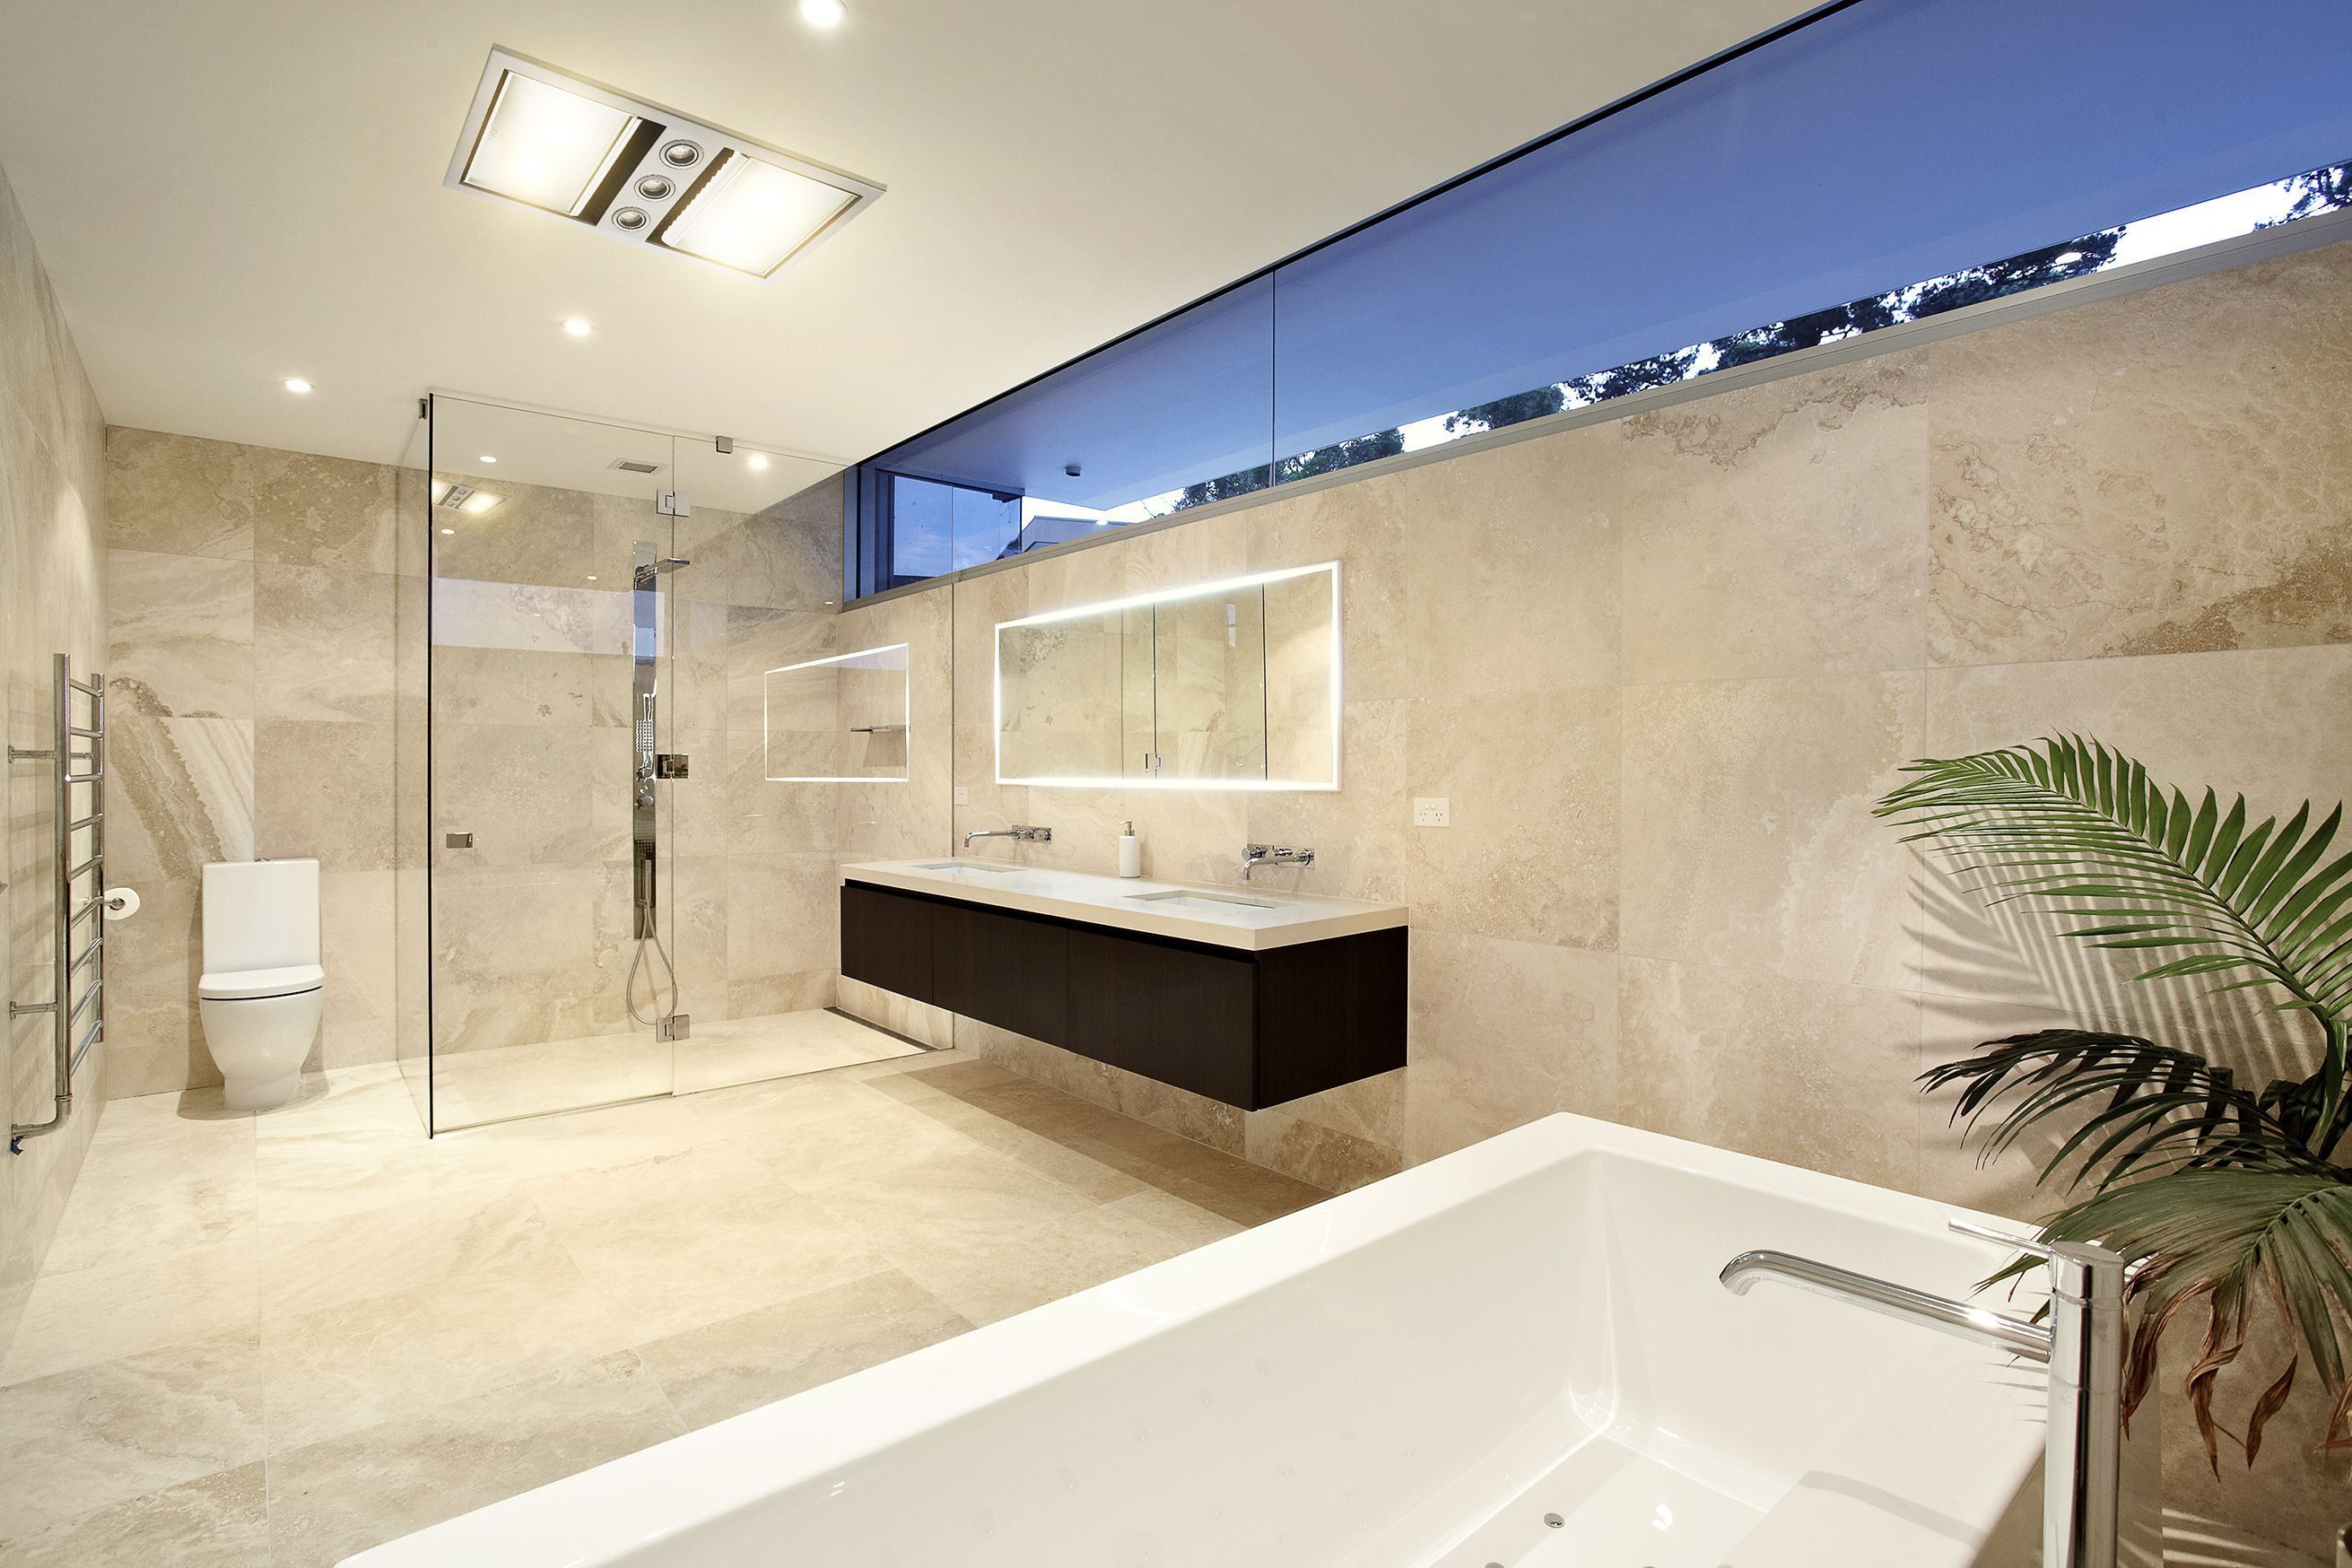 More #bathroomdesign featuring the #IXLneo. This long and high ...